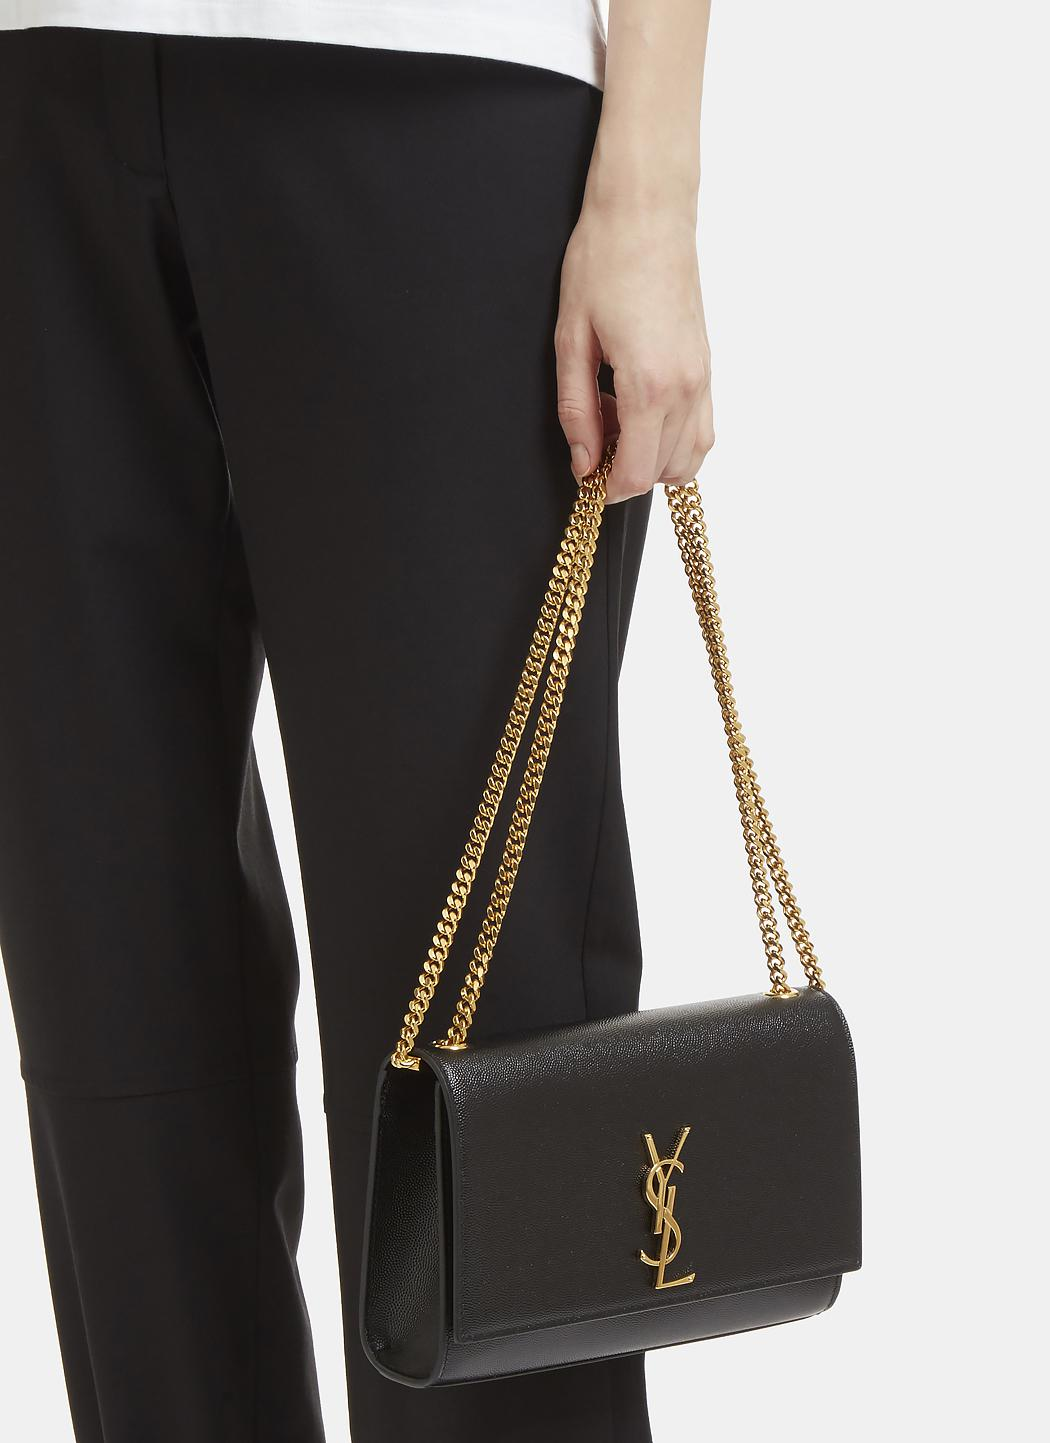 Ysl Medium Kate Monogram Bag Black Adorn Collection